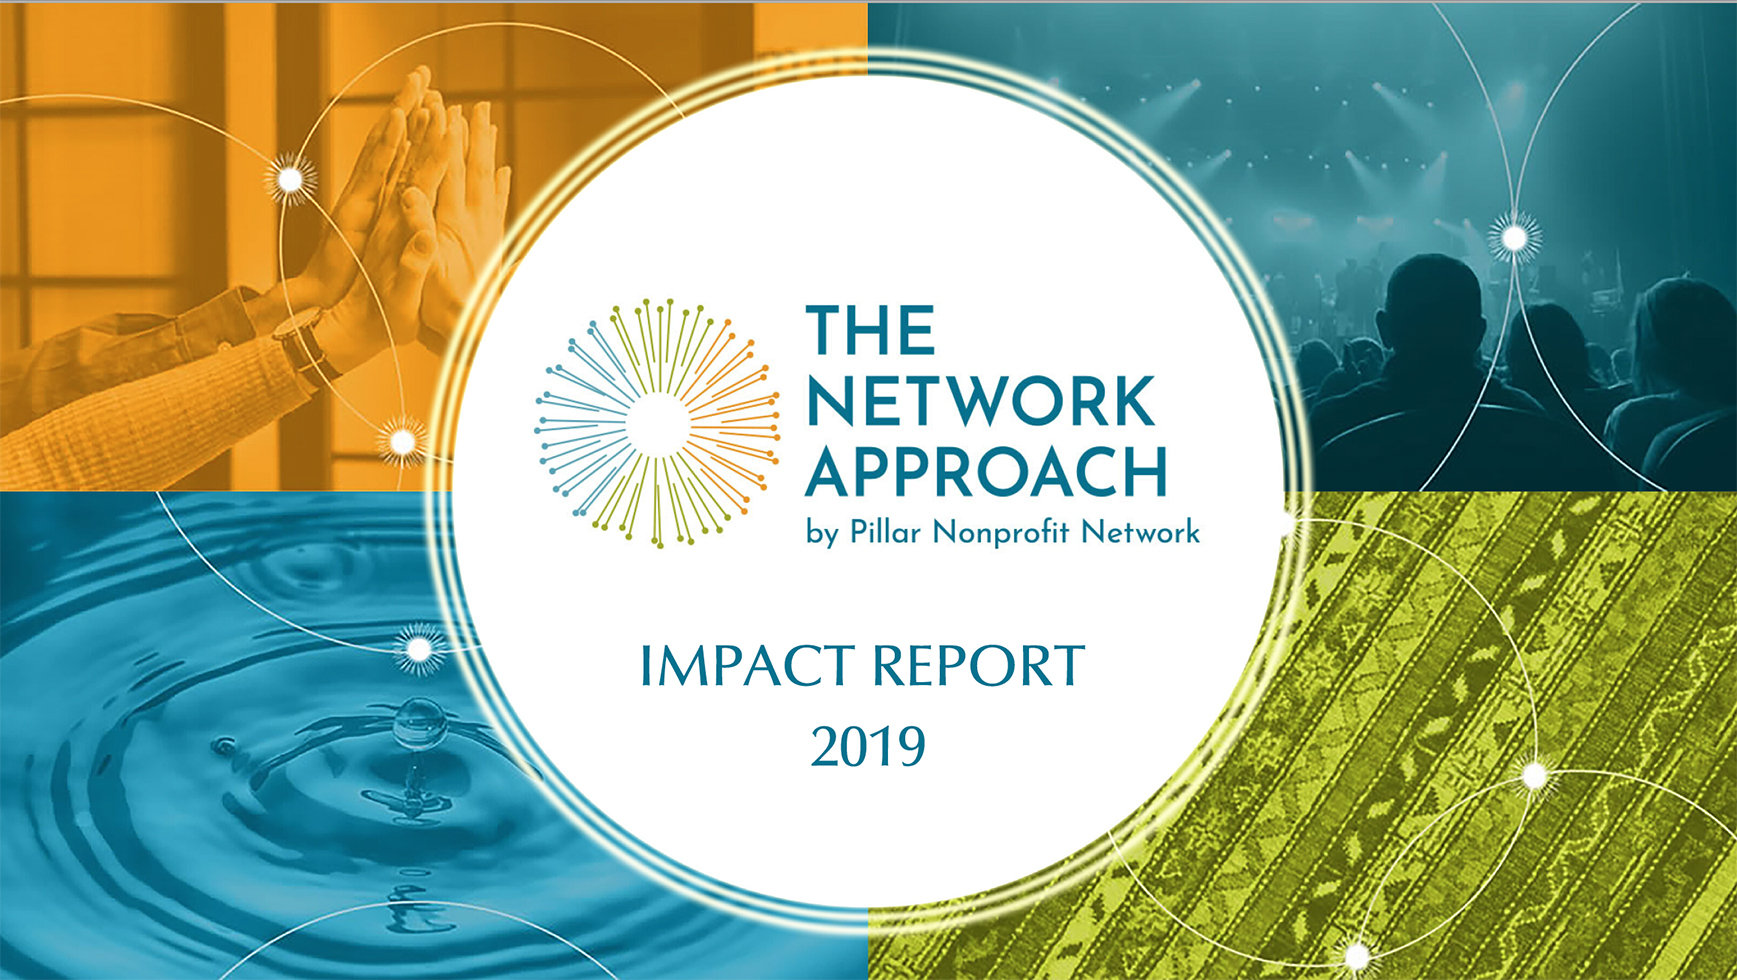 The Network Approach - Pillar's 2019 Impact Report